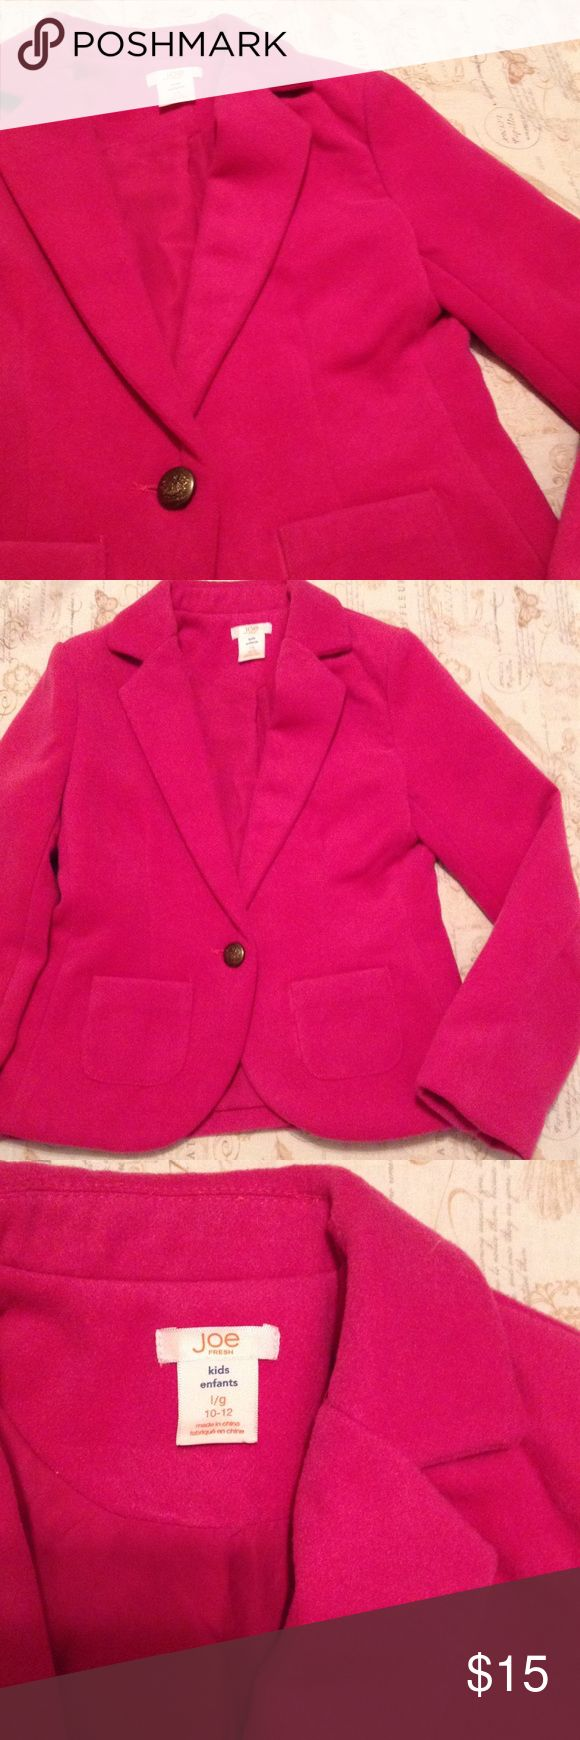 Joe Fresh Blazer - Girl Your girl will look sharp in this beautifully constructed, classic fitted blazer. Features notch collar, 1 button closure, 2 patch pockets, back vent, fully lined in pink! Excellent pre loved condition. Ages 10-12. Joe Fresh Jackets & Coats Blazers